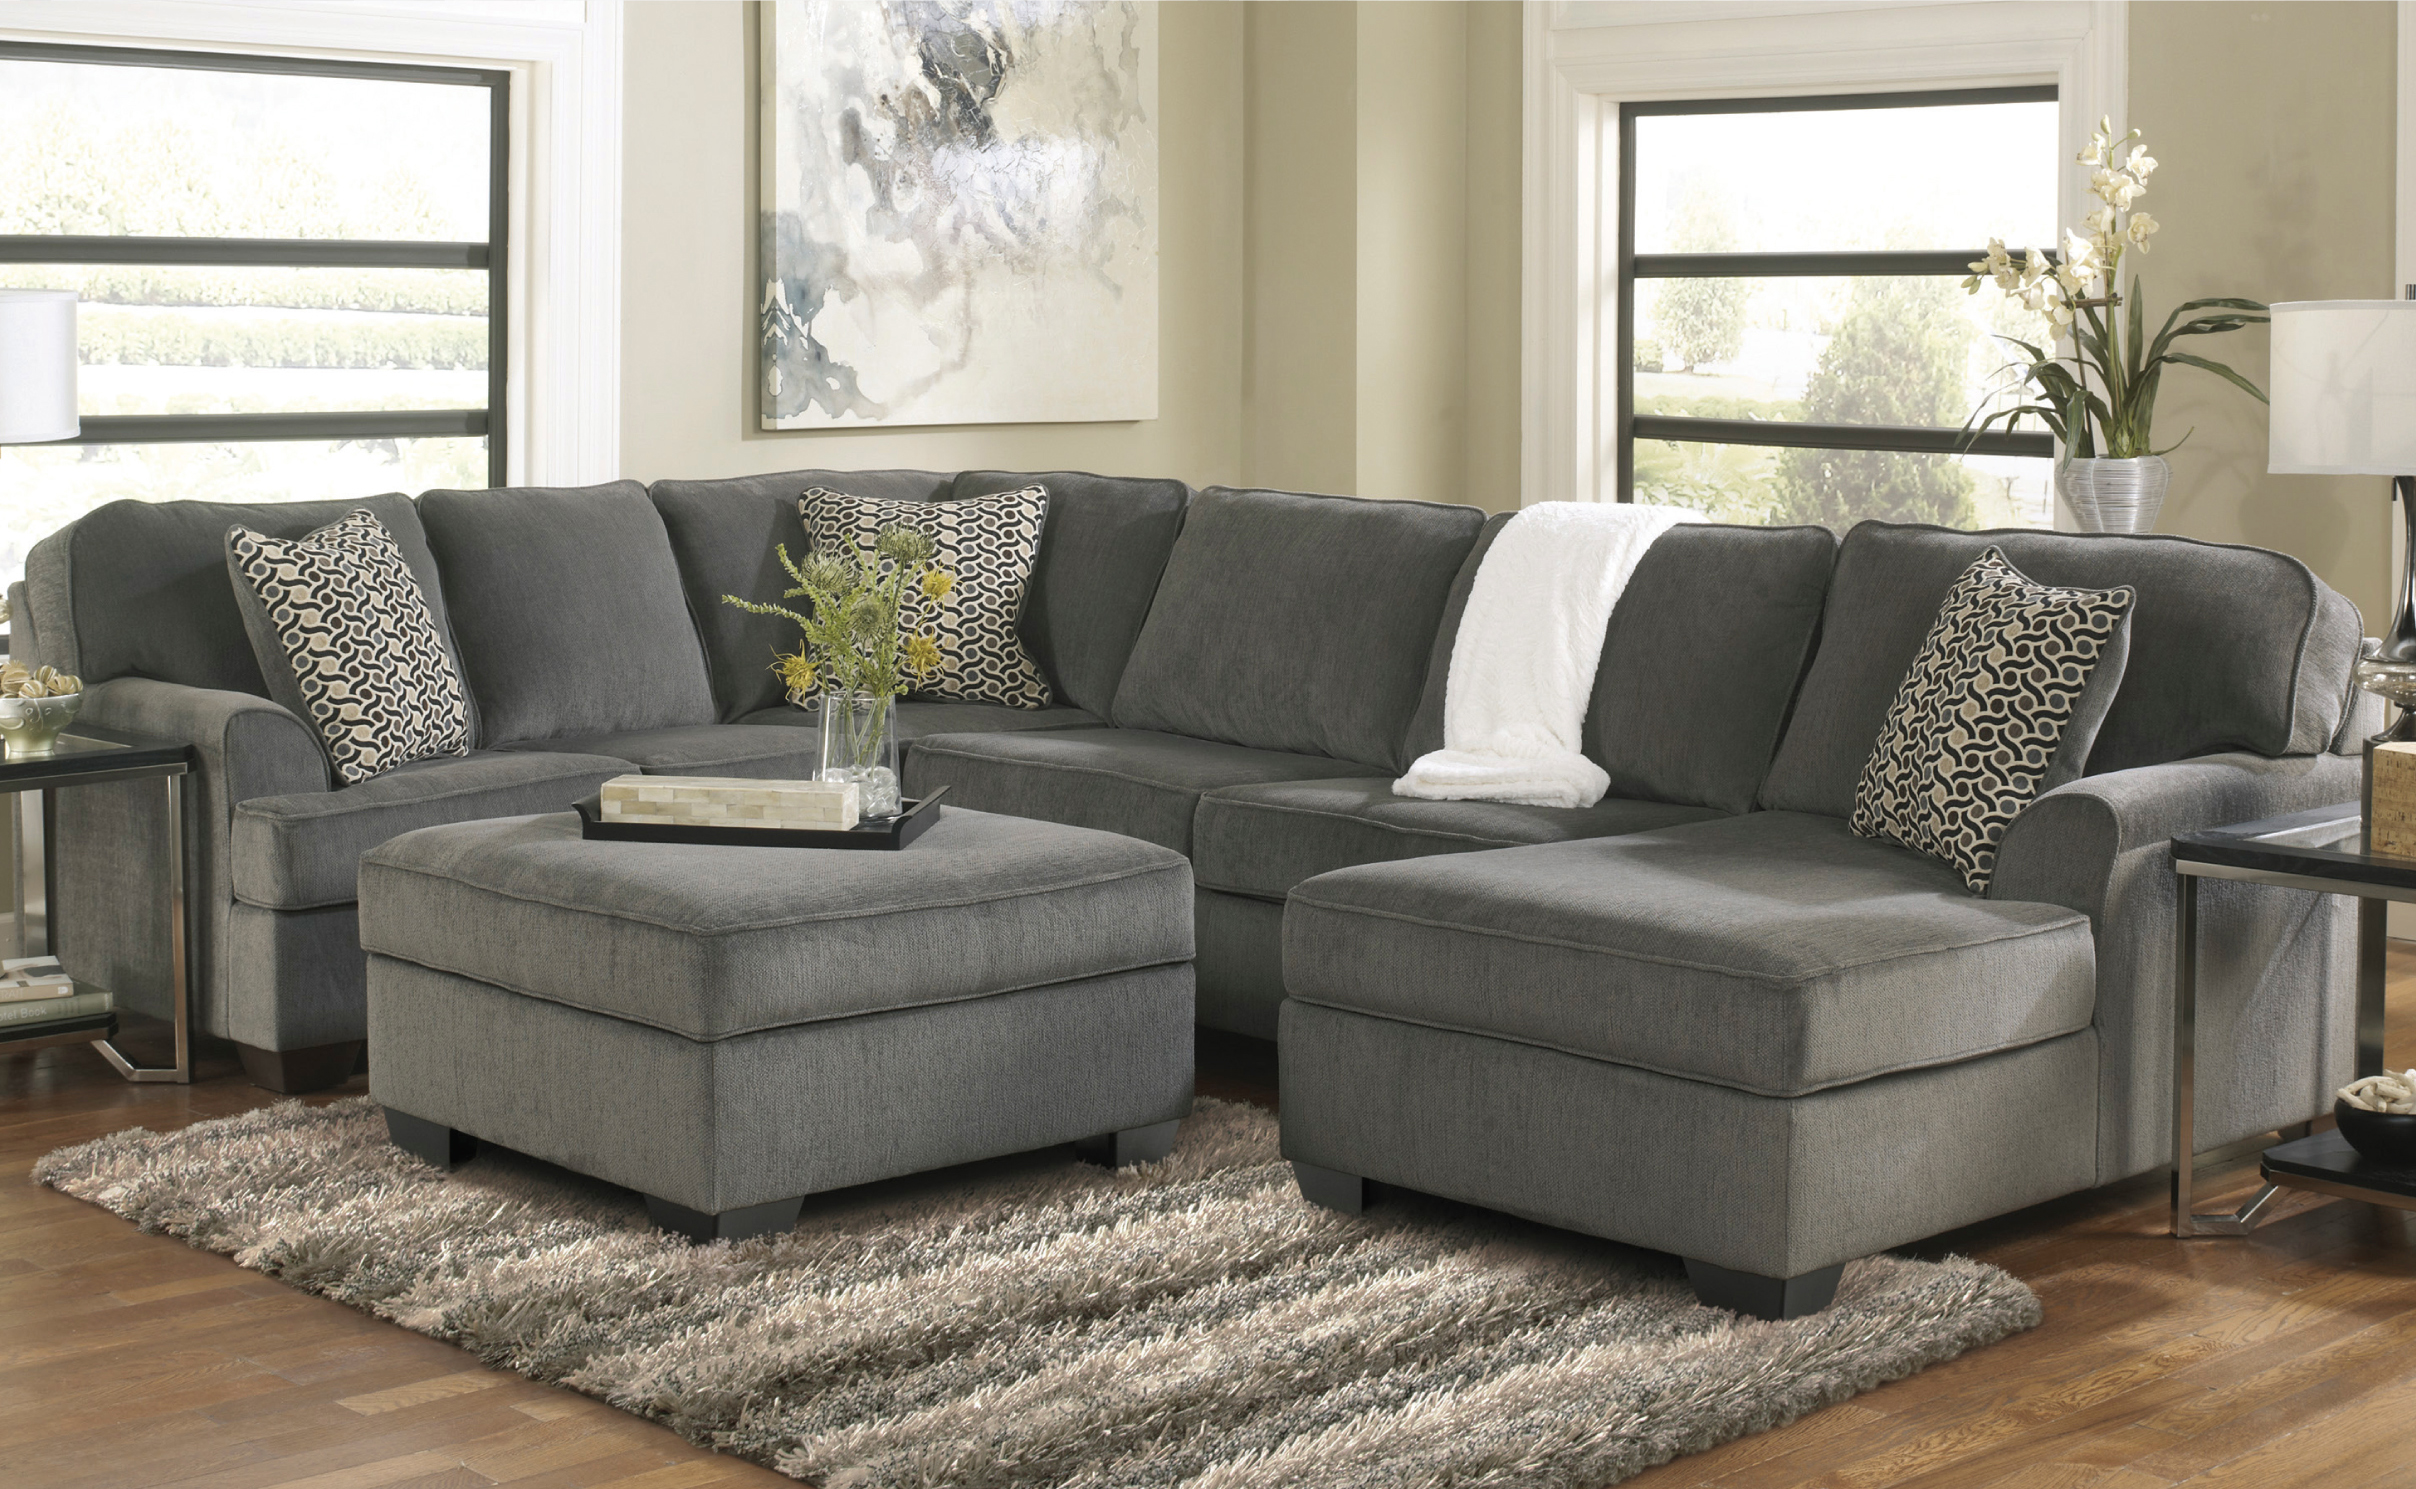 Sofa Restposten Clearance Furniture In Chicago | Darvin Clearance